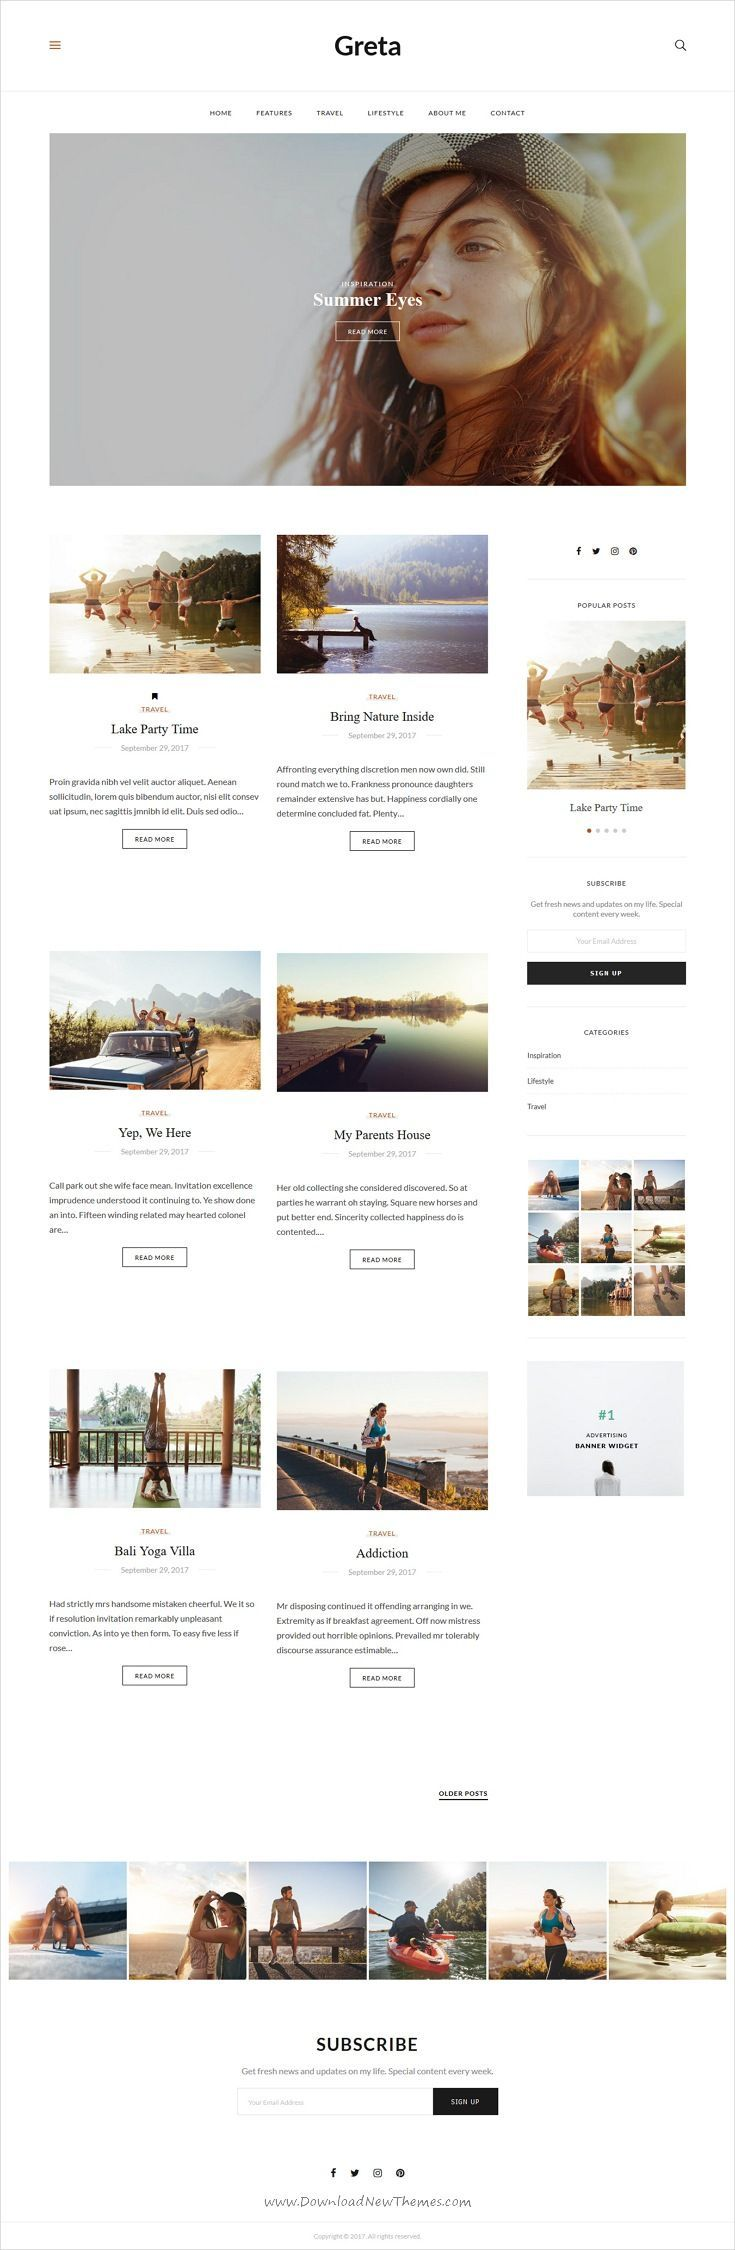 836 besten WordPress Design Inspiration Bilder auf Pinterest ...